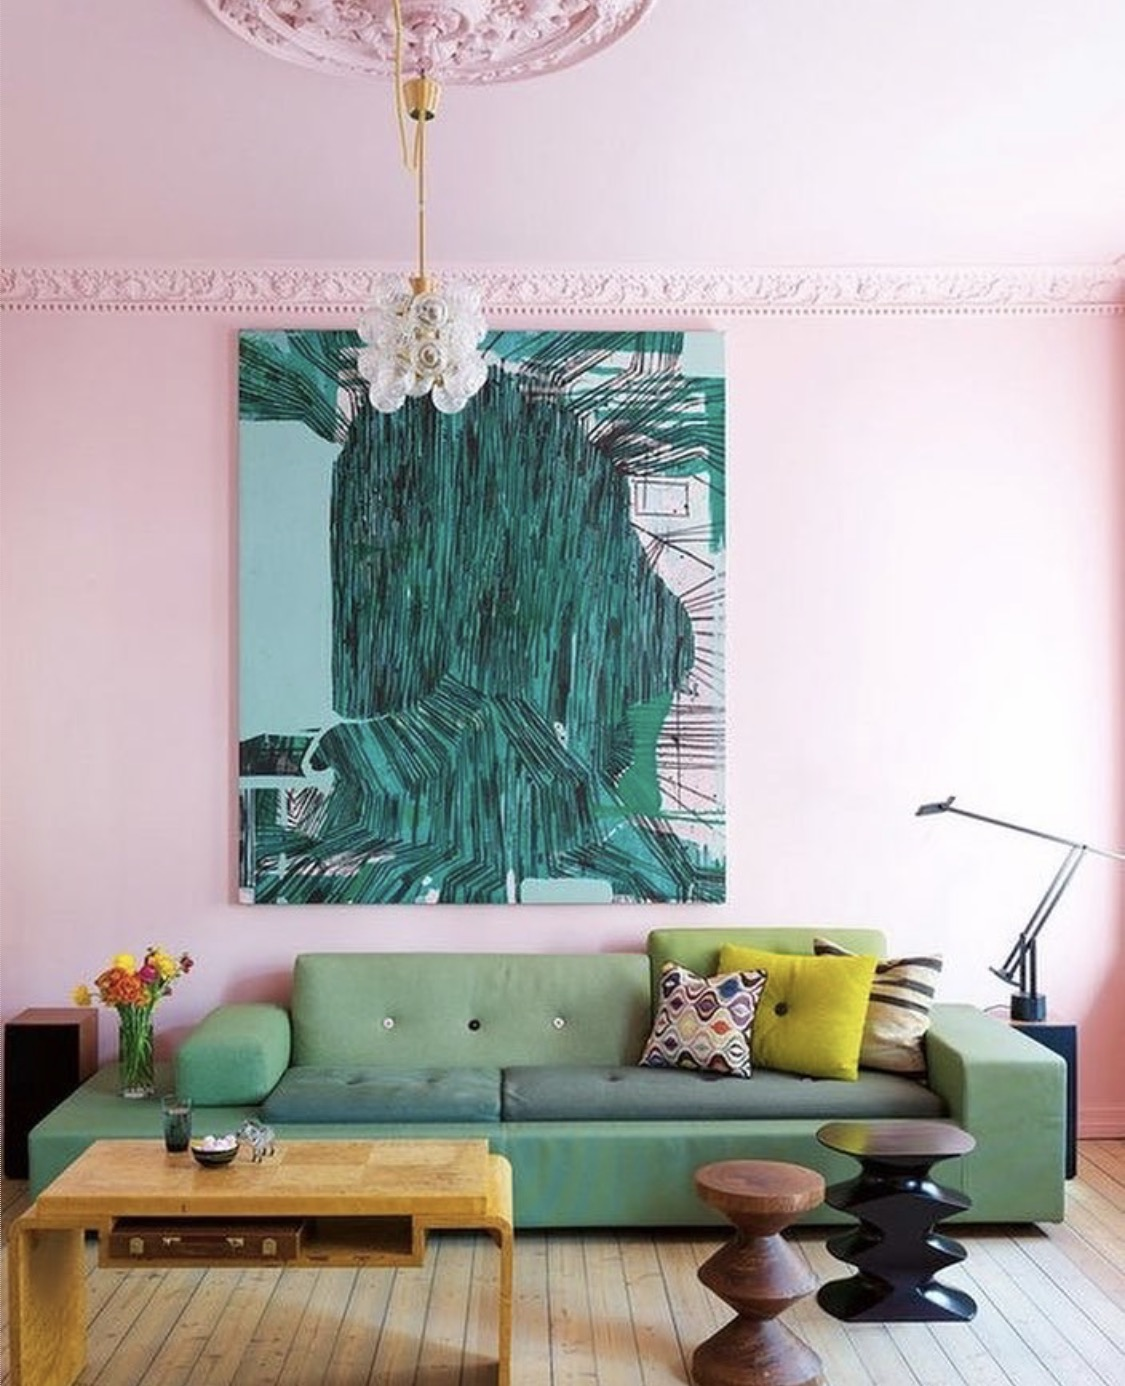 Pink room inspo. Photography by  Erin Williamson .